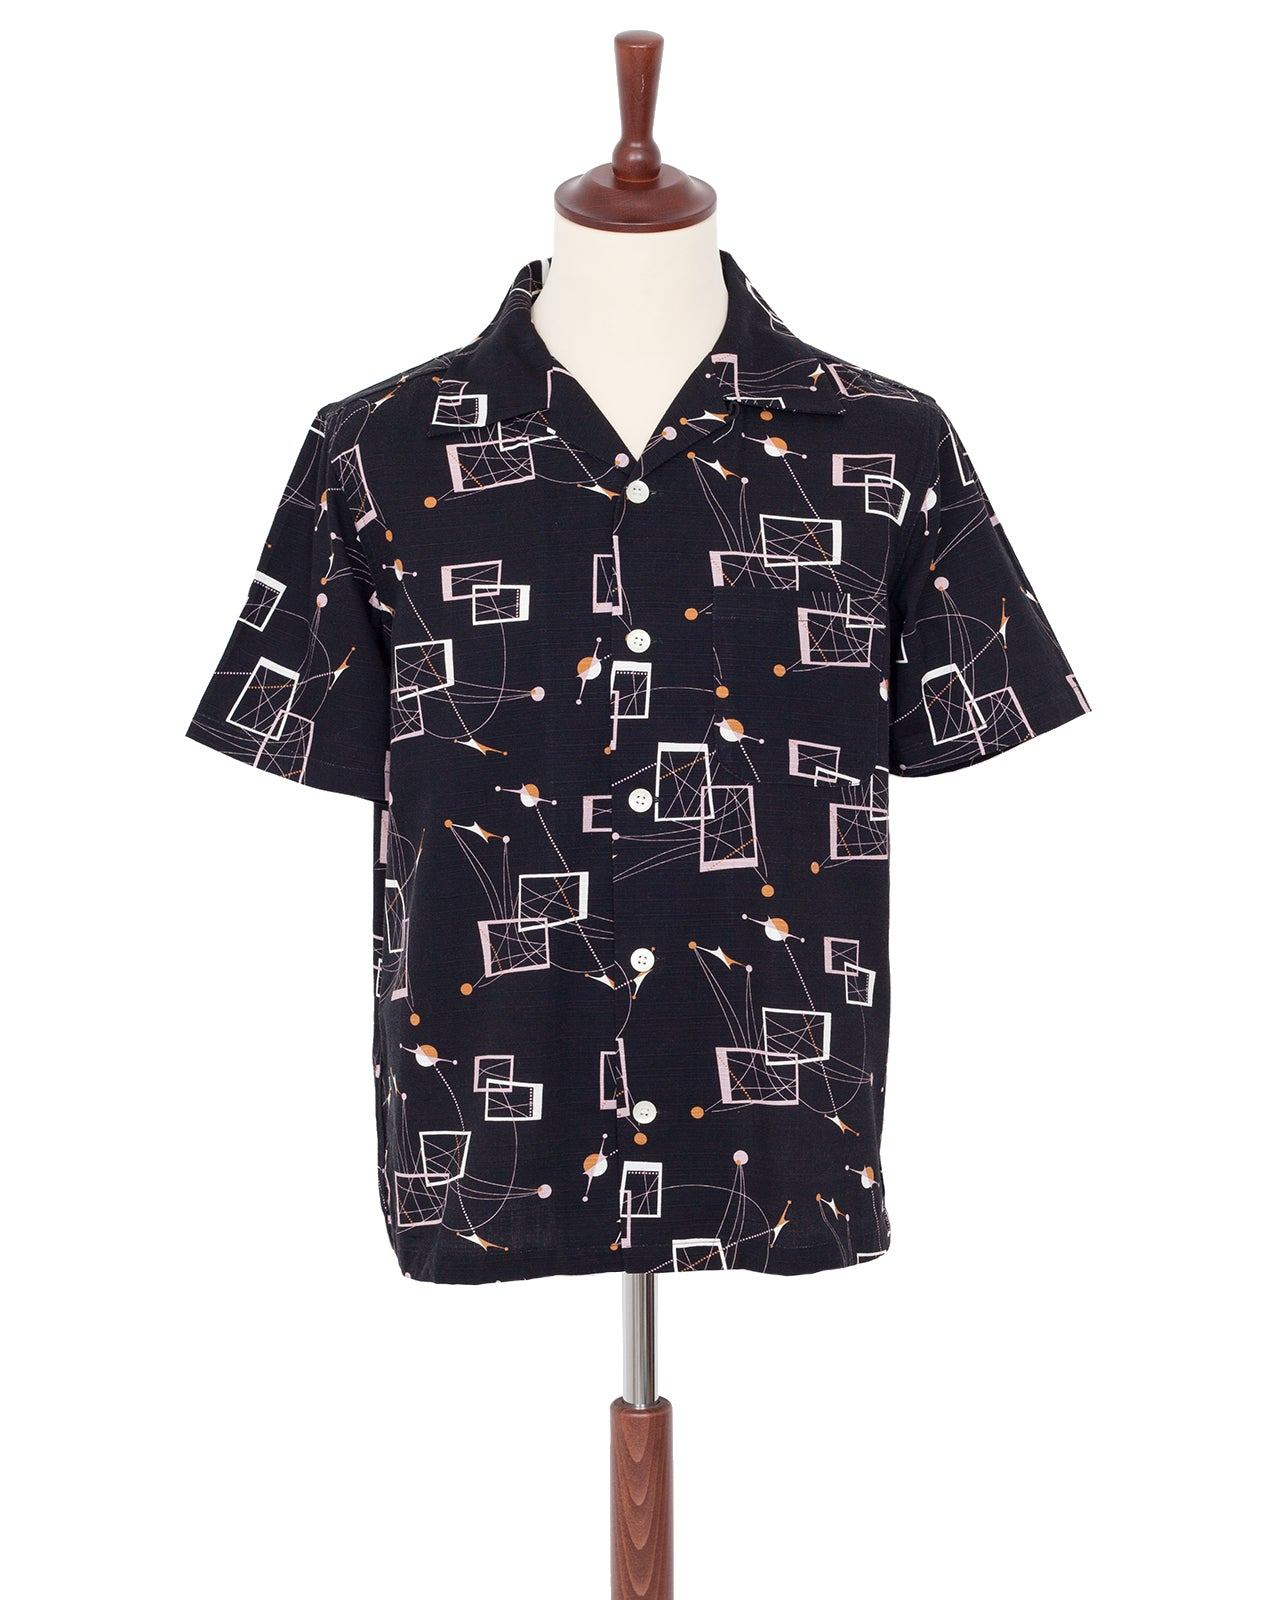 Weirdo Short Sleeve Shirt, Atomic Weirdo, Black